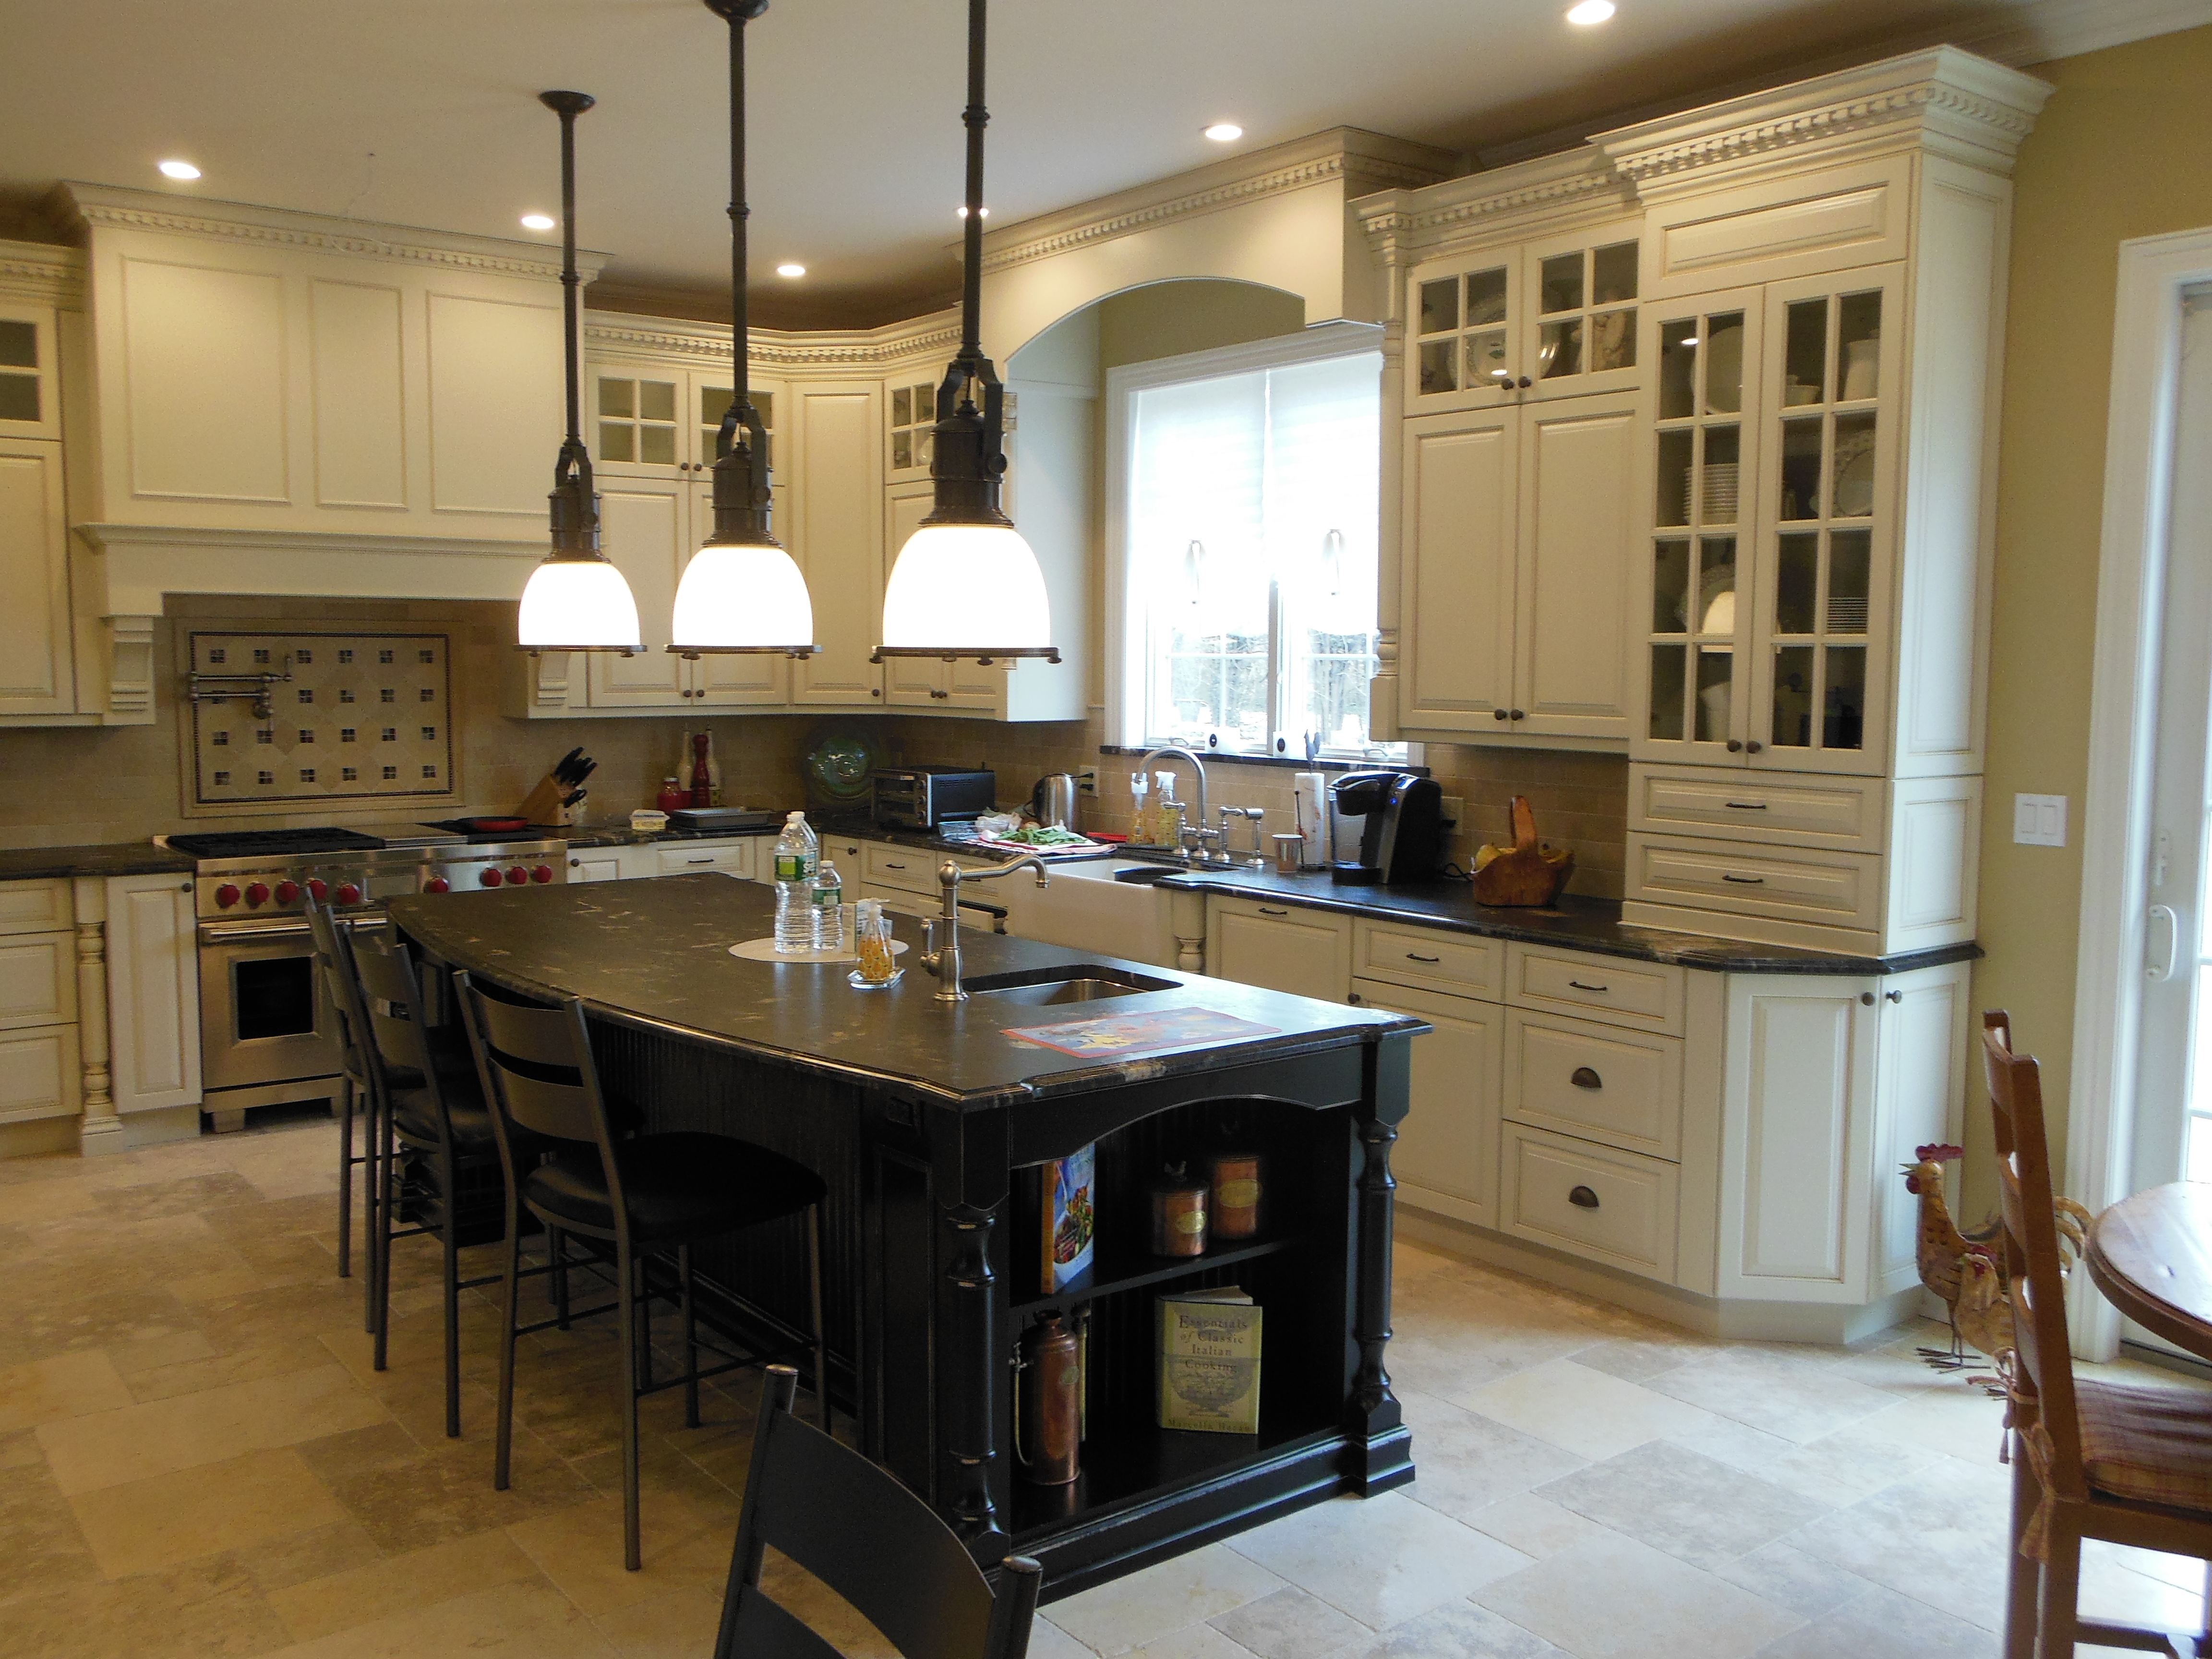 Galant kitchens in deer park ny 631 620 3 for Cabico kitchen cabinets reviews